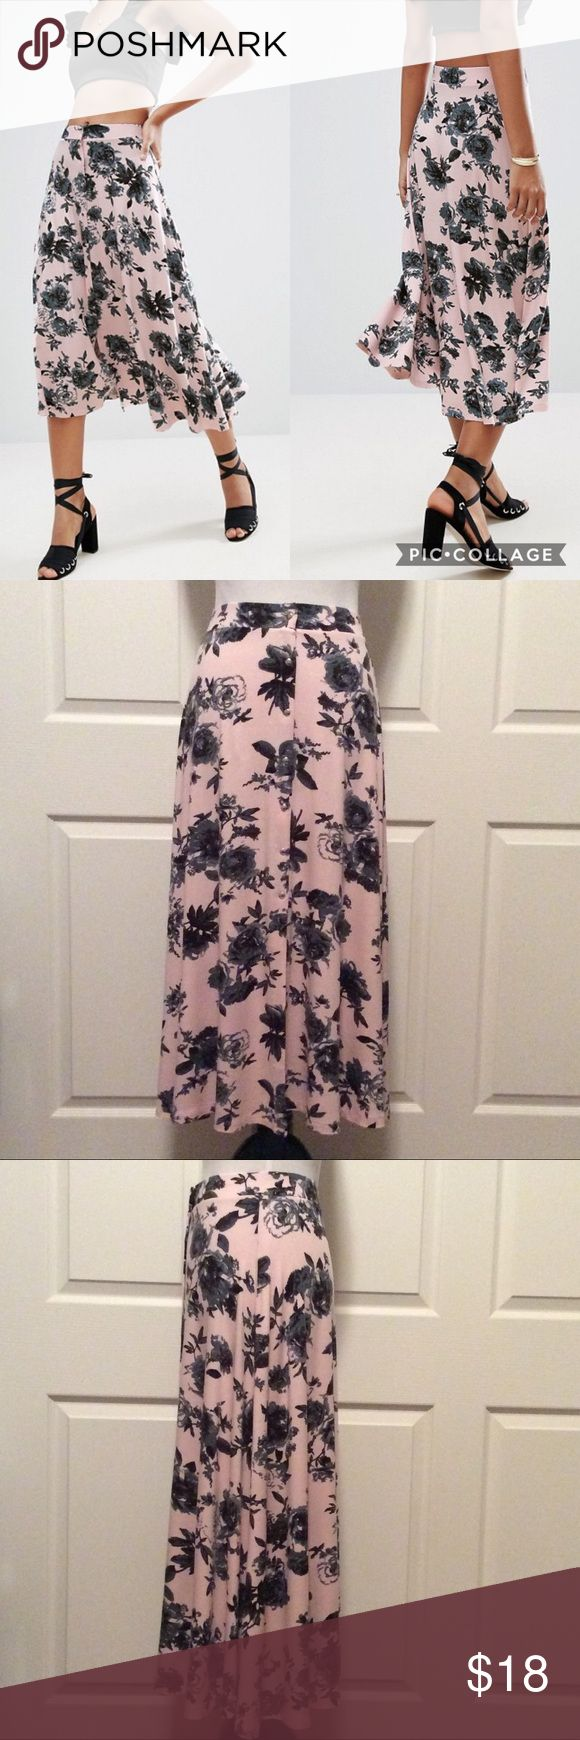 """Just In💕 Floral Print Snap Front Skirt Blush and black floral print midi skirt with snap front detail. Great condition. Comfy flat elastic waistband...and the fabric feels like your favorite soft tee. Measured laying flat, across and down. 13""""W, (stretches to approx 15.5""""), 35""""L. ASOS Skirts Midi"""